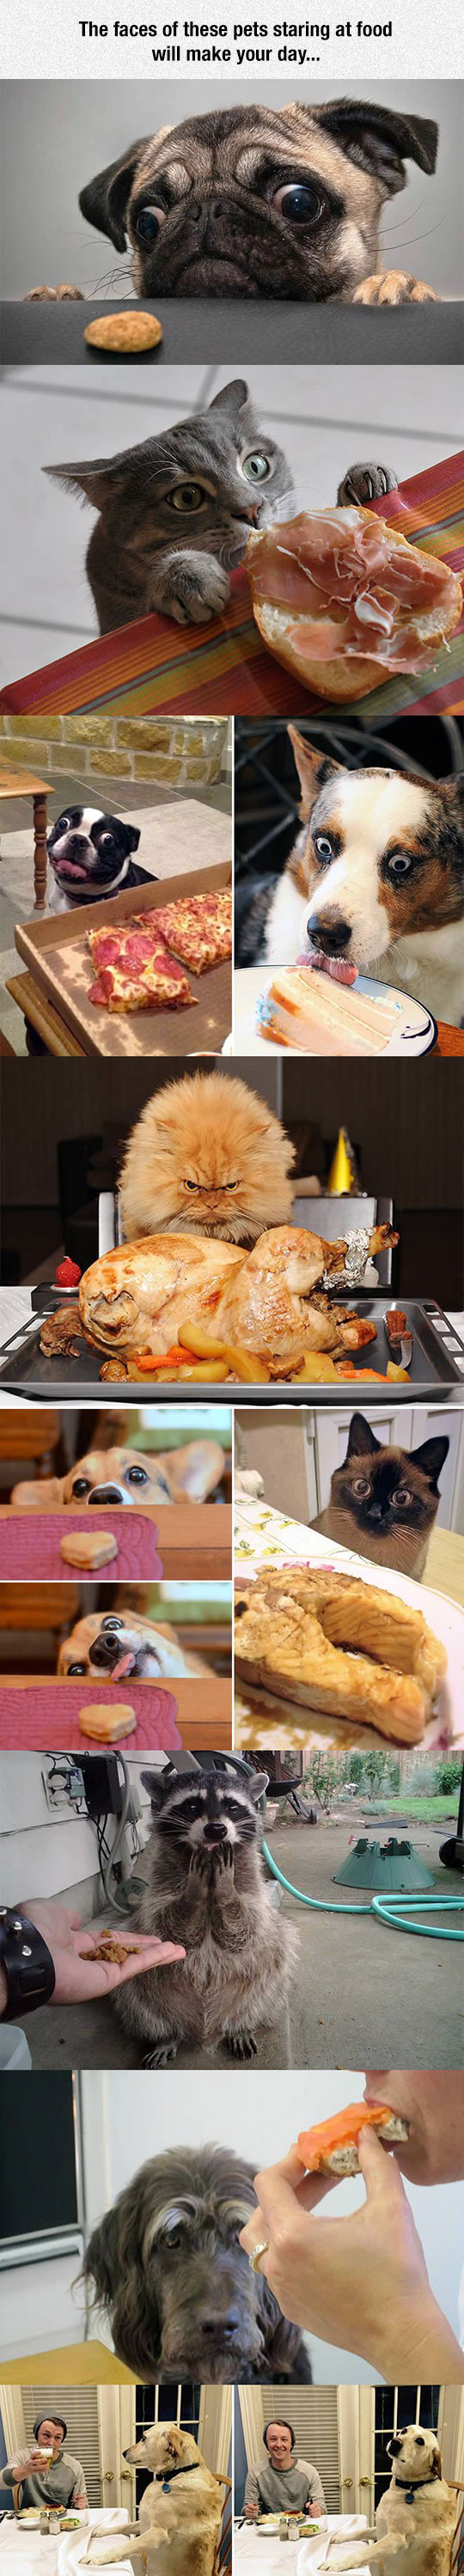 funny-pets-cat-dog-looking-food